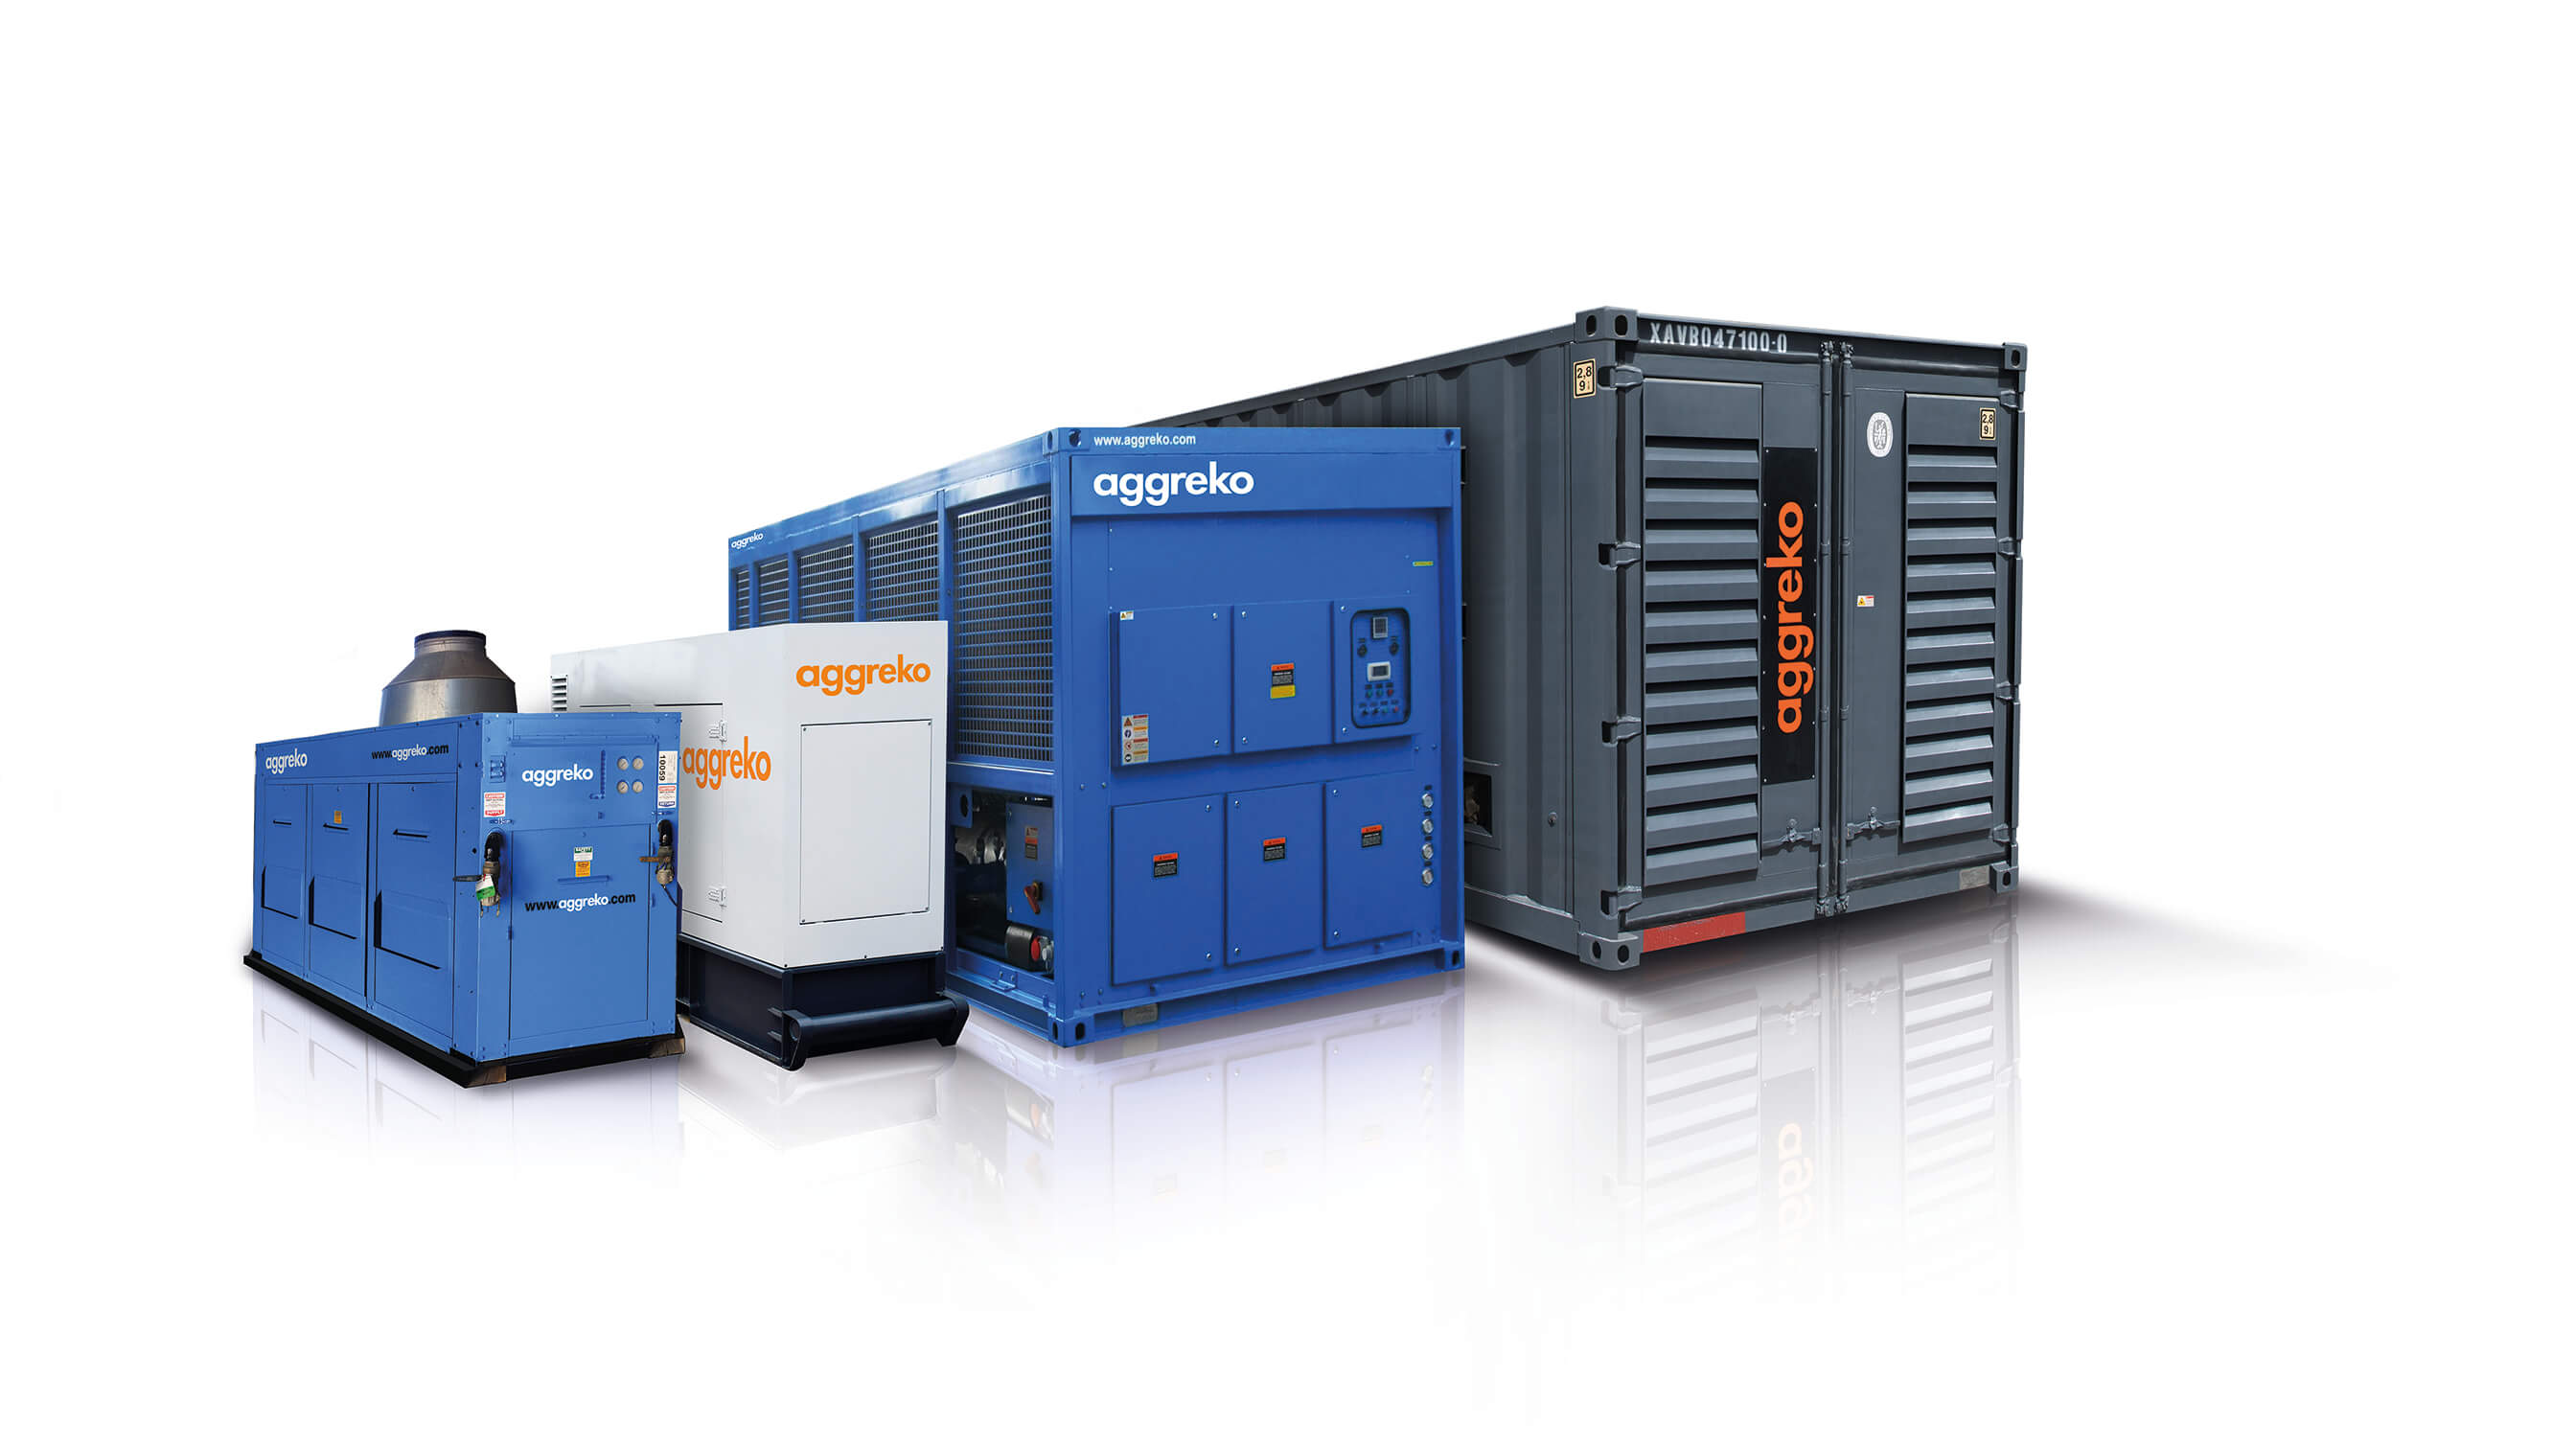 Aggreko products in one image